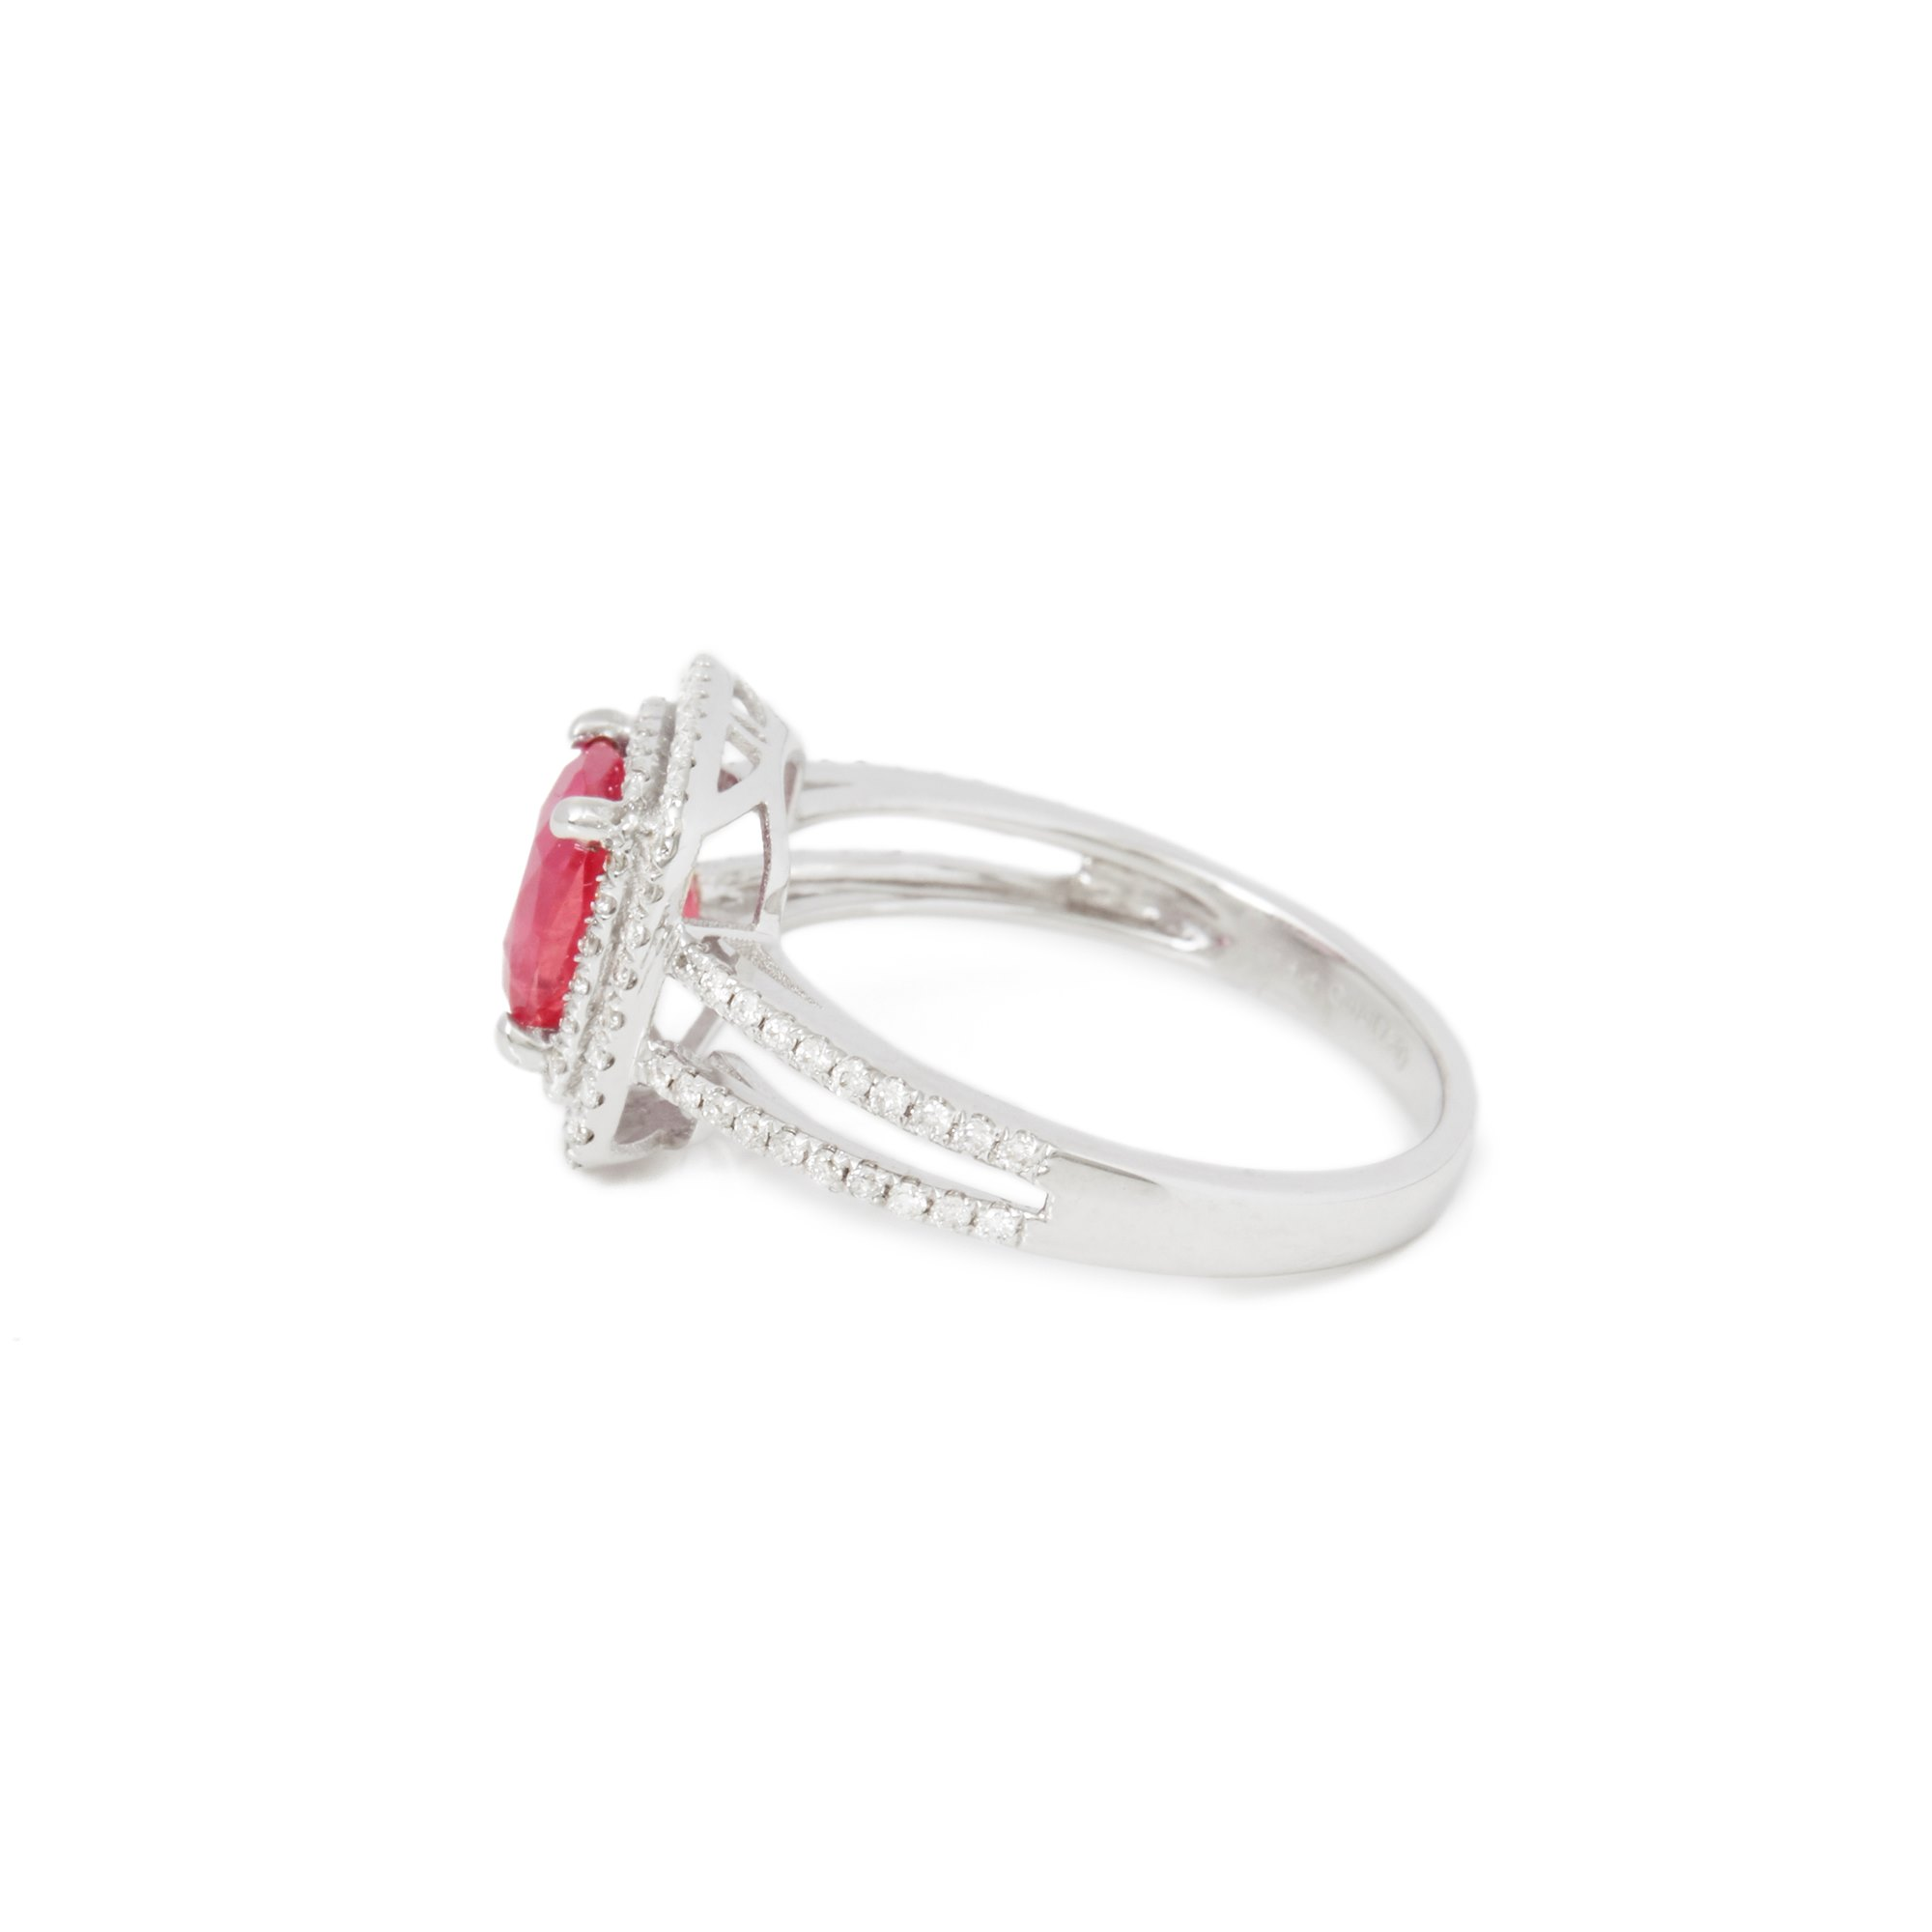 David Jerome 18k White Gold Ruby and Diamond Ring